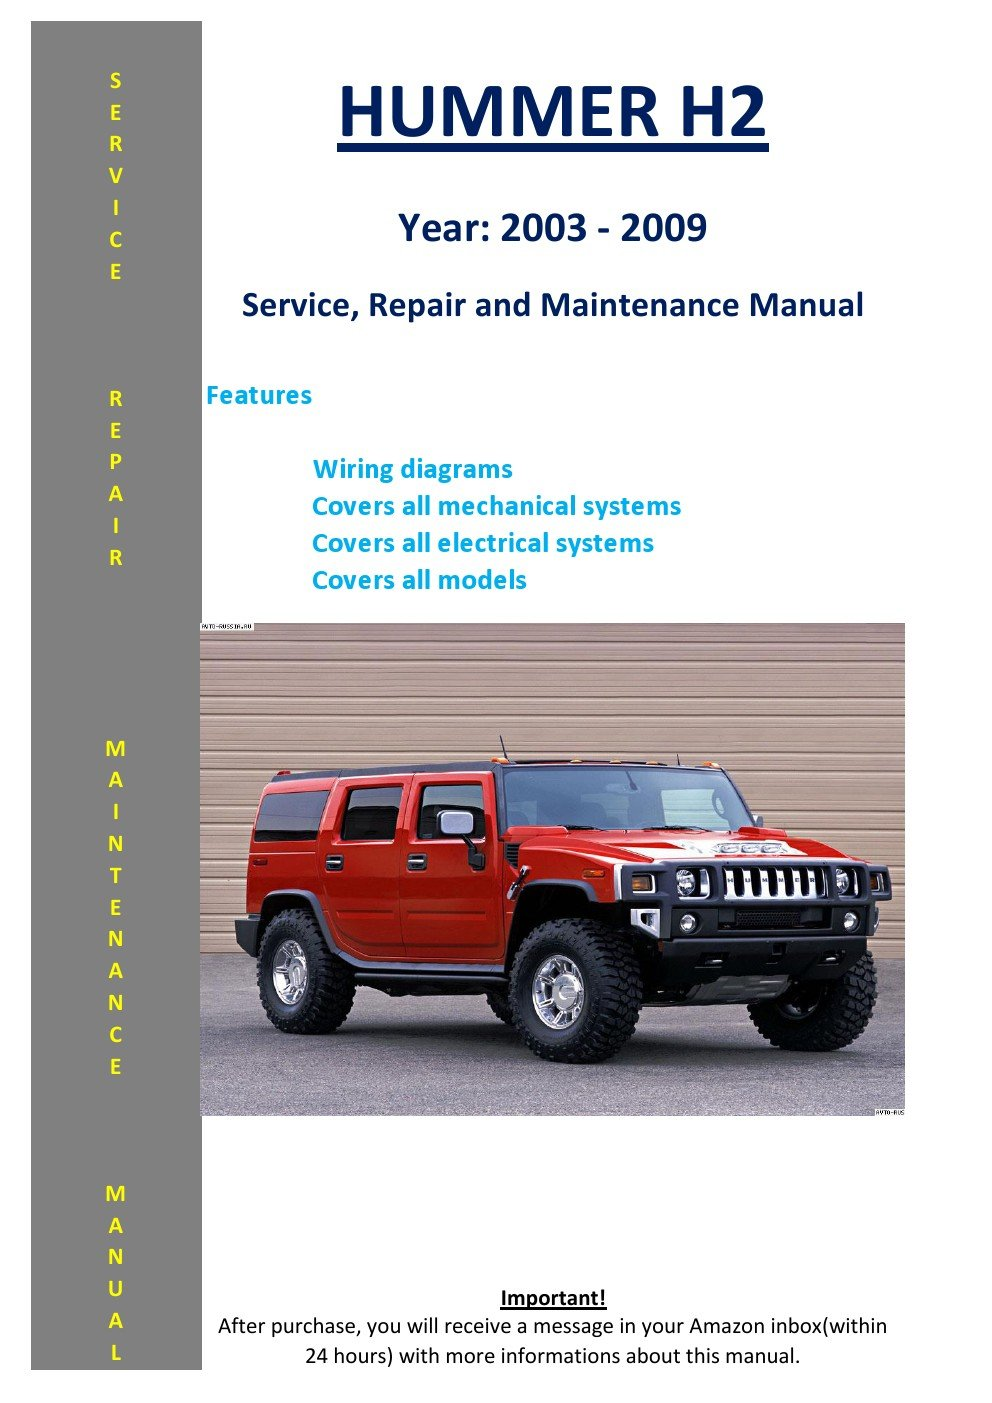 Hummer H2 From 2003 2009 Service Repair Maintenance Manual 03 Jeep Rubicon Suspension Diagram Softauto Manuals 5826002600438 Books